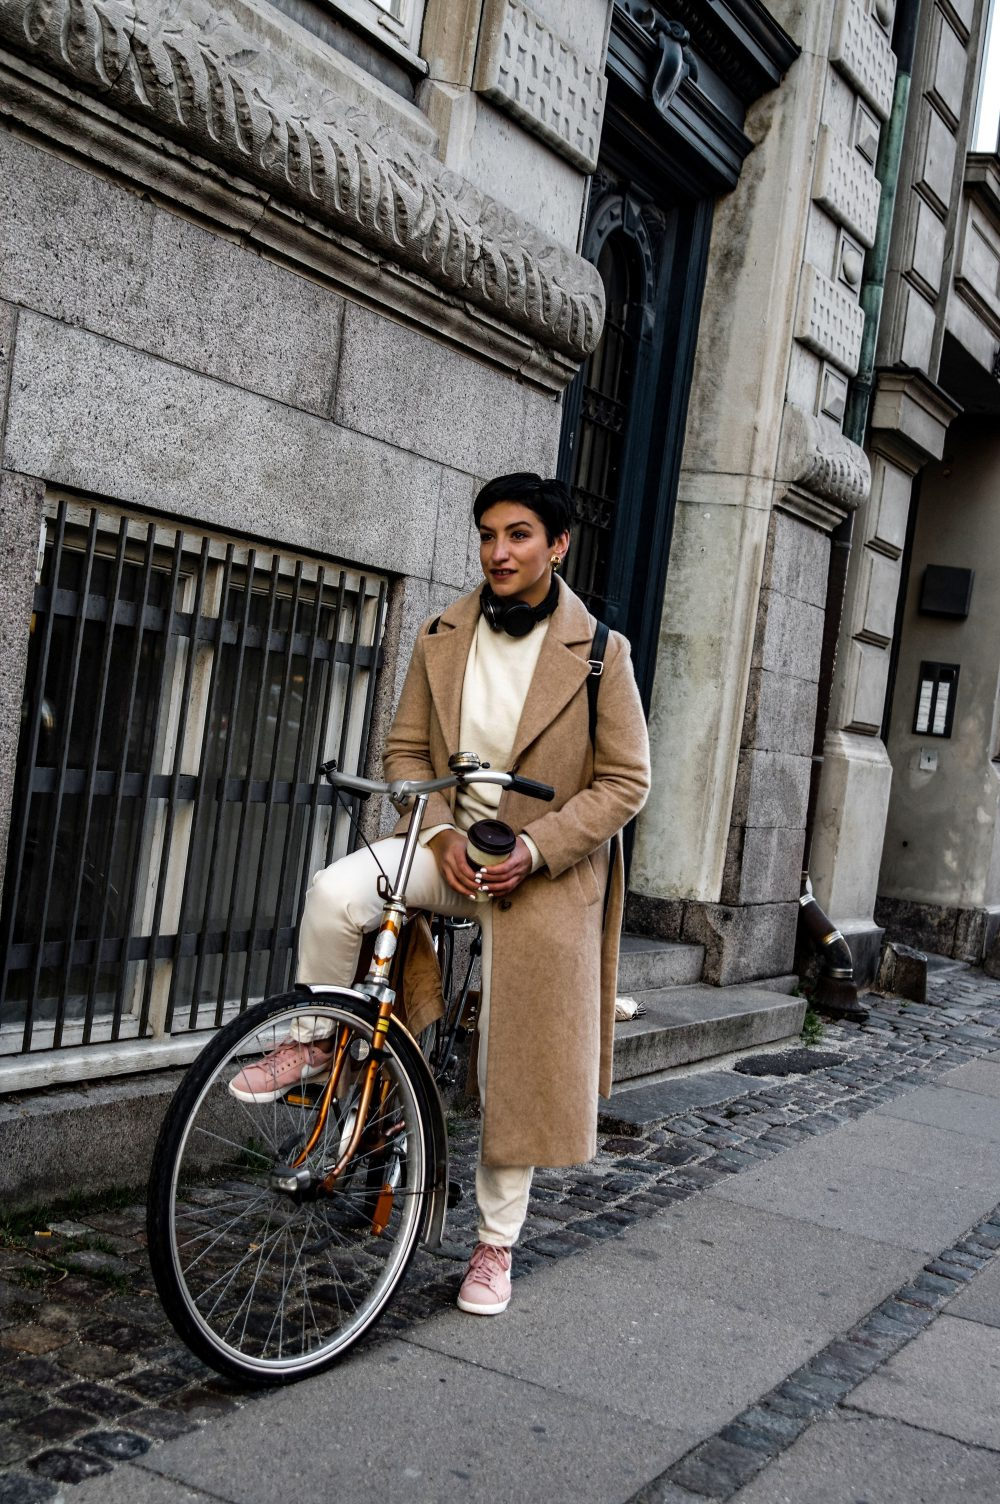 3-Scandinavian-winter-outfits-ideas-instagram-round-up-layered-outfitwork-wear-casual-style-Beige-coat-Copenhagen-streetstyle